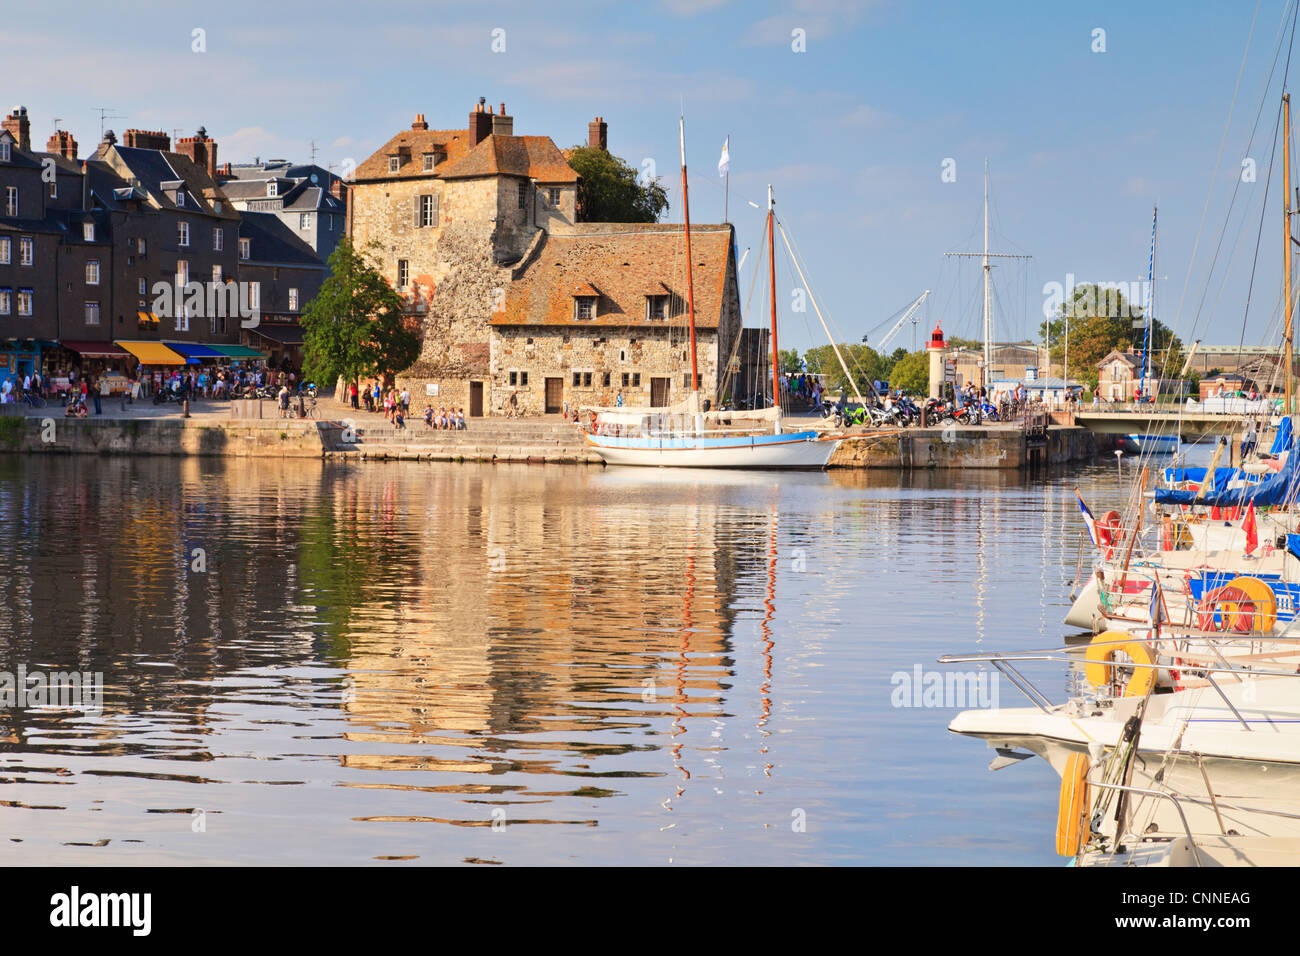 The harbour at Honfleur, Normandy, France - Stock Image